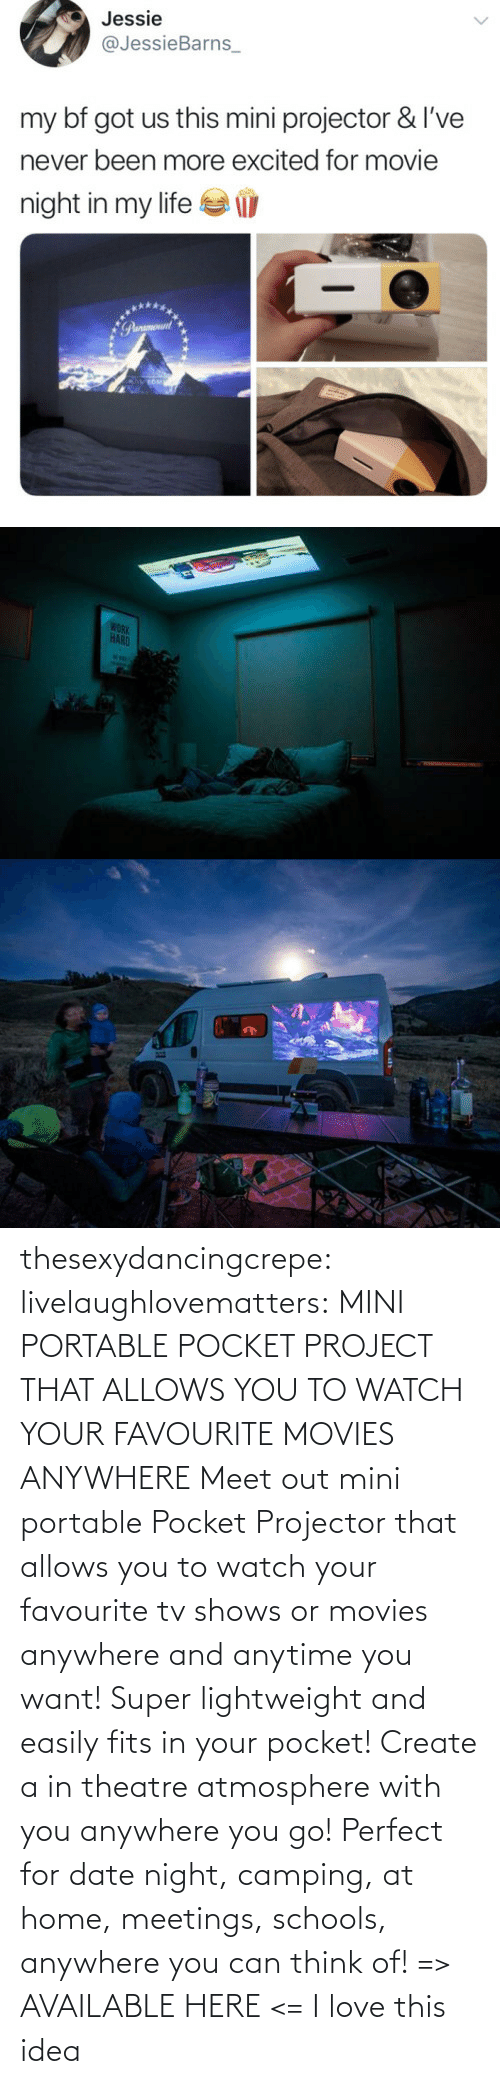 portable: thesexydancingcrepe: livelaughlovematters:   MINI PORTABLE POCKET PROJECT THAT ALLOWS YOU TO WATCH YOUR FAVOURITE MOVIES ANYWHERE Meet out mini portable Pocket Projector that allows you to watch your favourite tv shows or movies anywhere and anytime you want! Super lightweight and easily fits in your pocket! Create a in theatre atmosphere with you anywhere you go! Perfect for date night, camping, at home, meetings, schools, anywhere you can think of! => AVAILABLE HERE <=    I love this idea